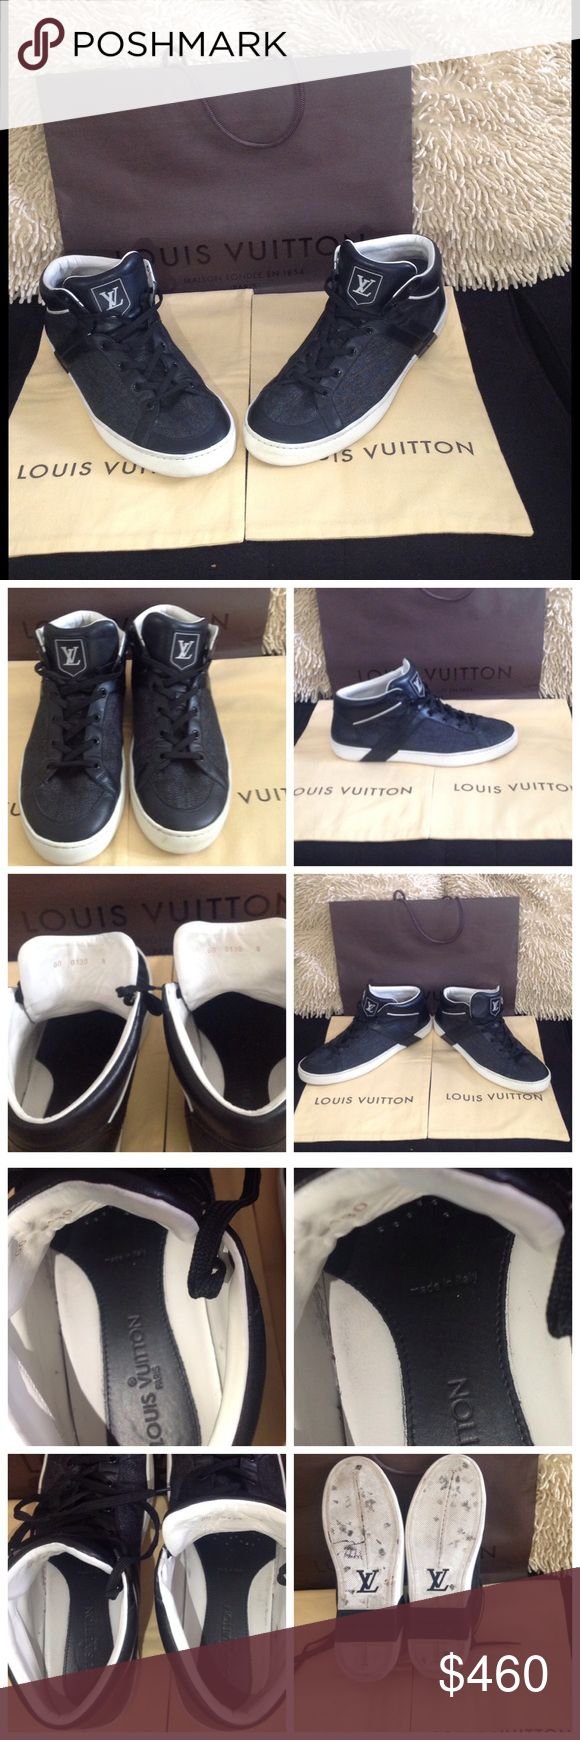 Louis Vuitton men's shoes size 8 Great condition, comes with 2 dustbags & the shopping bag, 100 %authentic, smoke and pets free home, size 8, made in Italy, thanks for looking  Louis Vuitton Shoes Sneakers